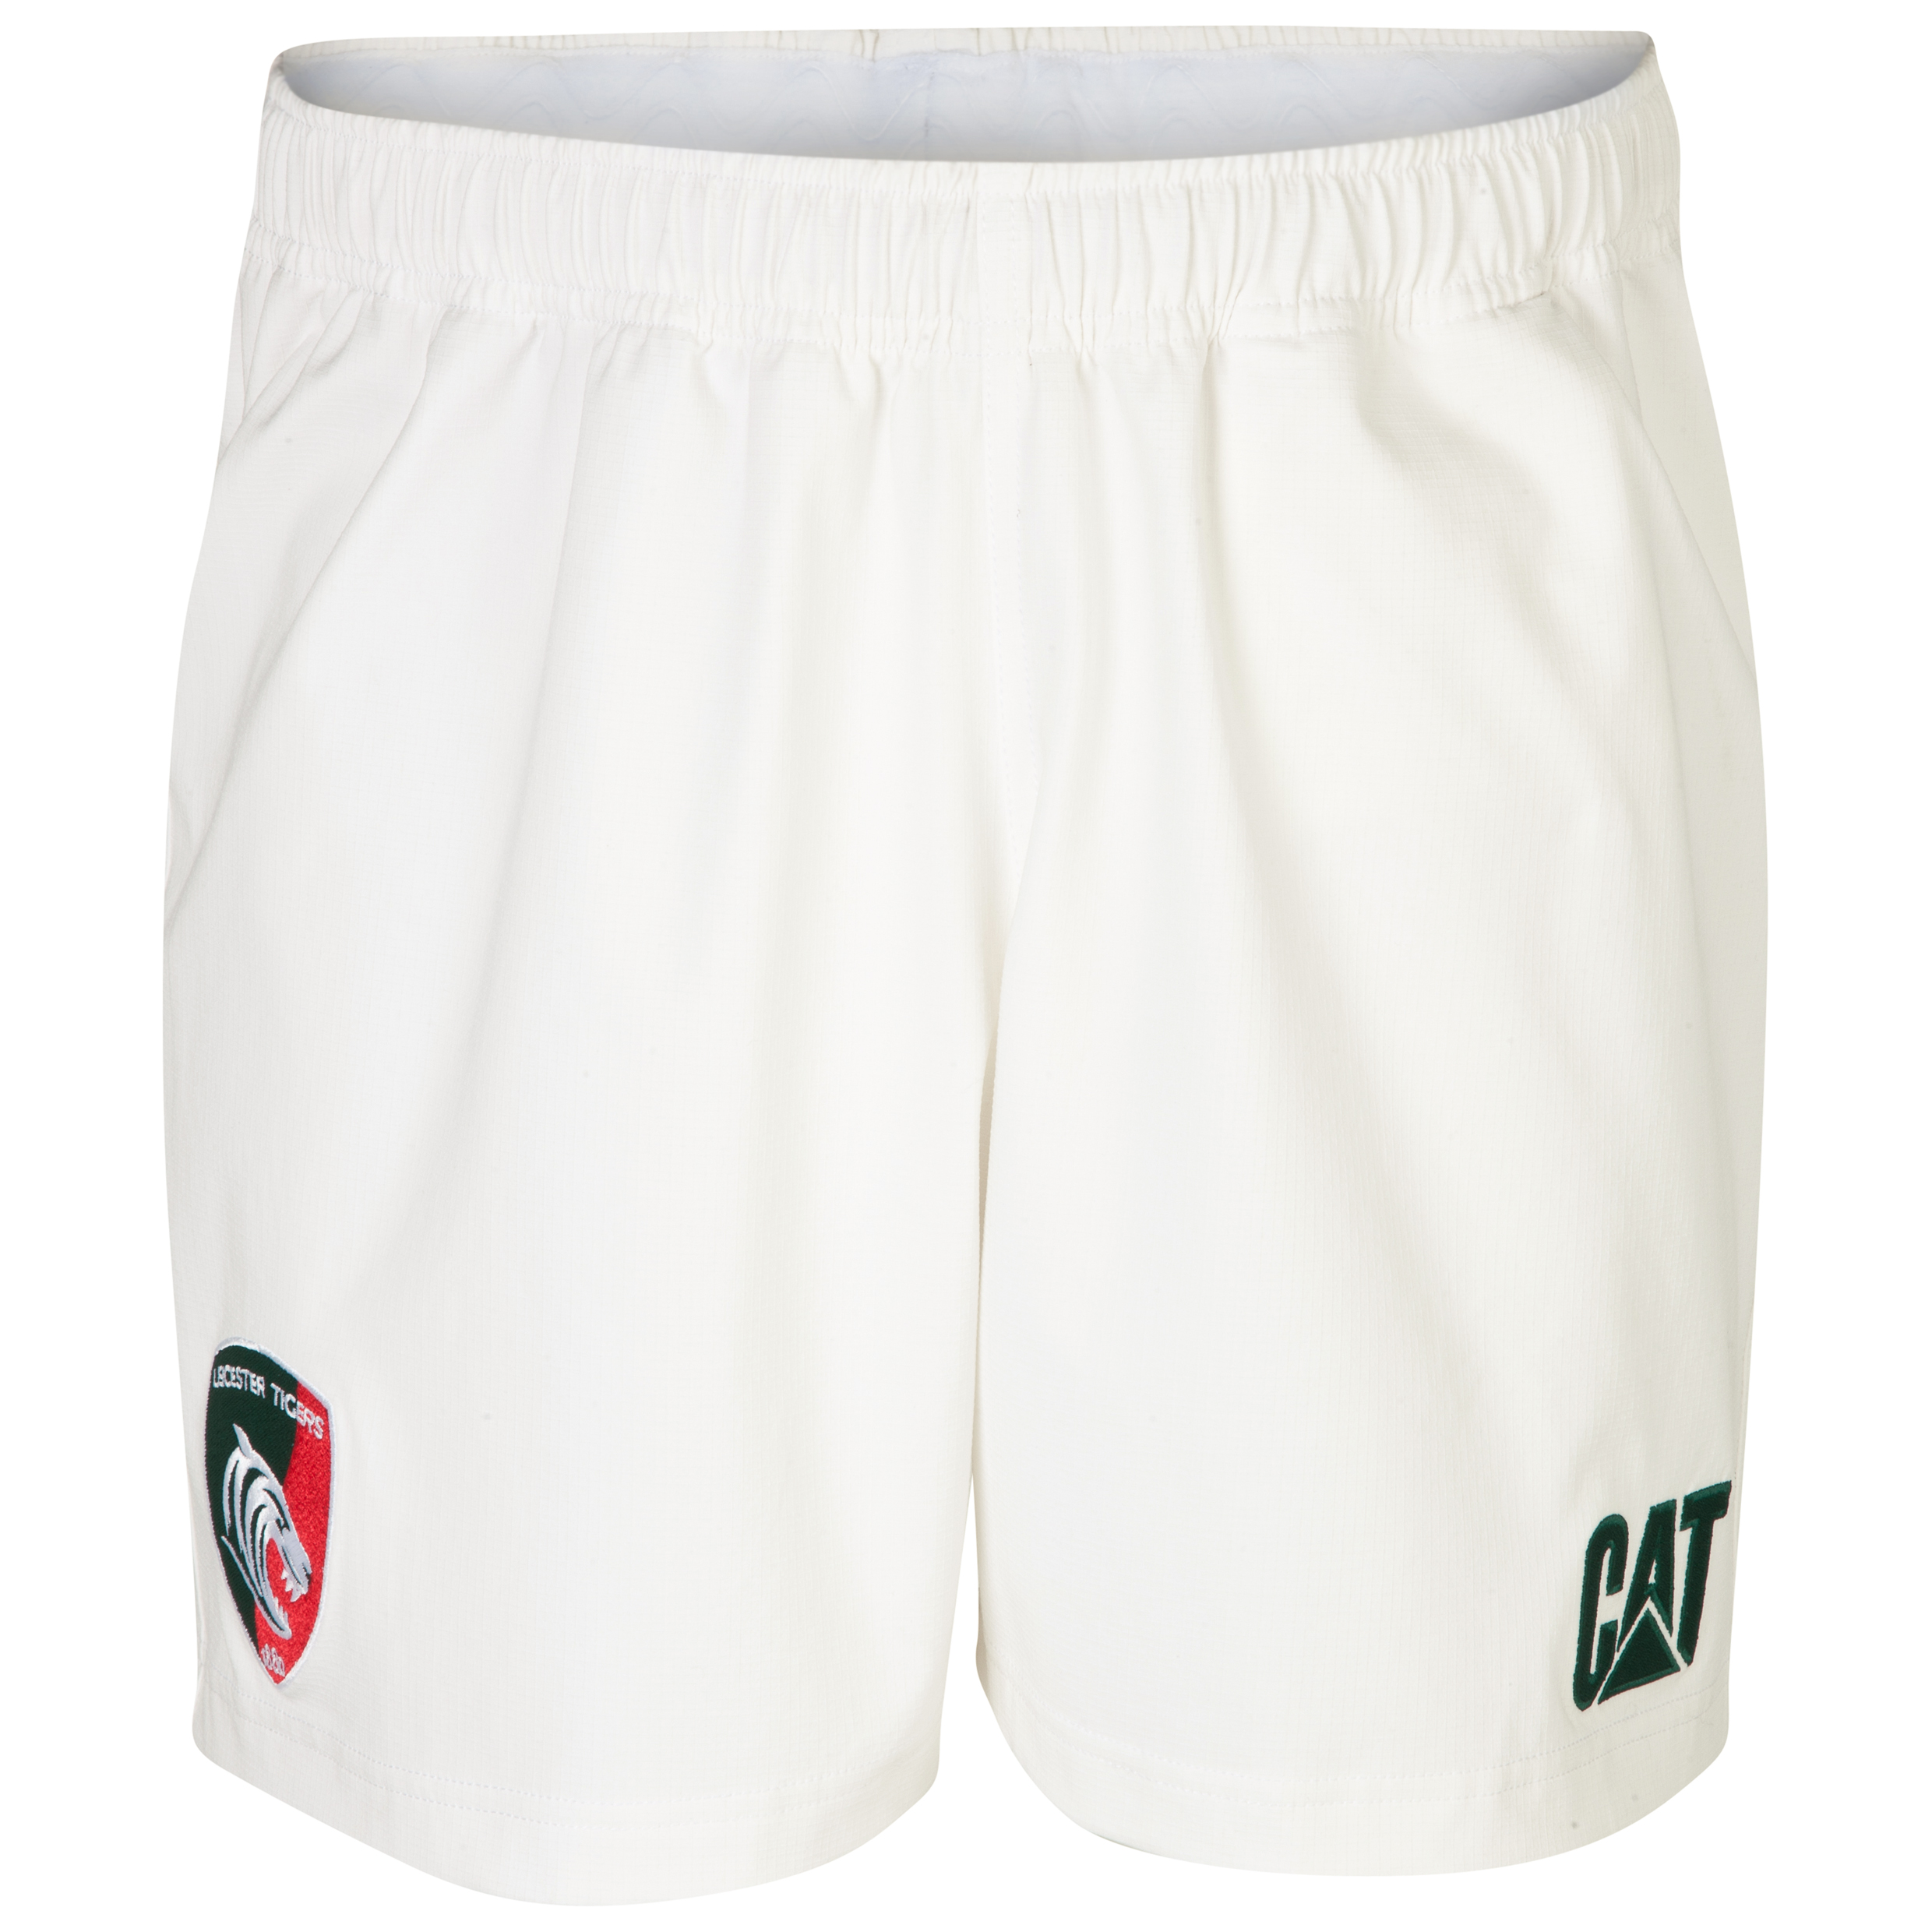 Leicester Tigers Alternate Short 2013/14